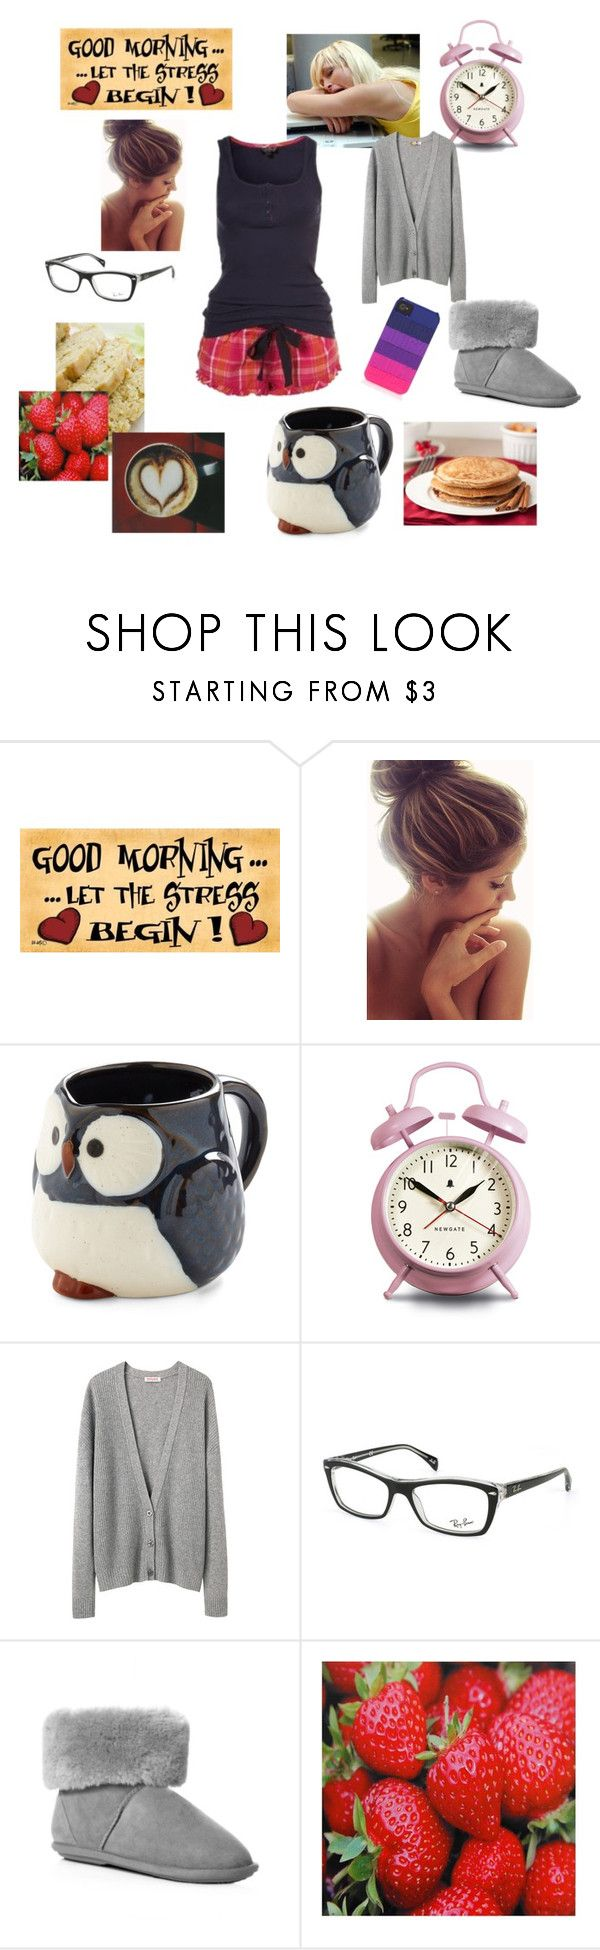 """""""Need Some Caffeine!!"""" by aellis1103 ❤ liked on Polyvore featuring WALL, Paris Hilton, Chicas Fashion, Newgate, Organic by John Patrick, Ray-Ban, Just Sheepskin and Juicy Couture"""